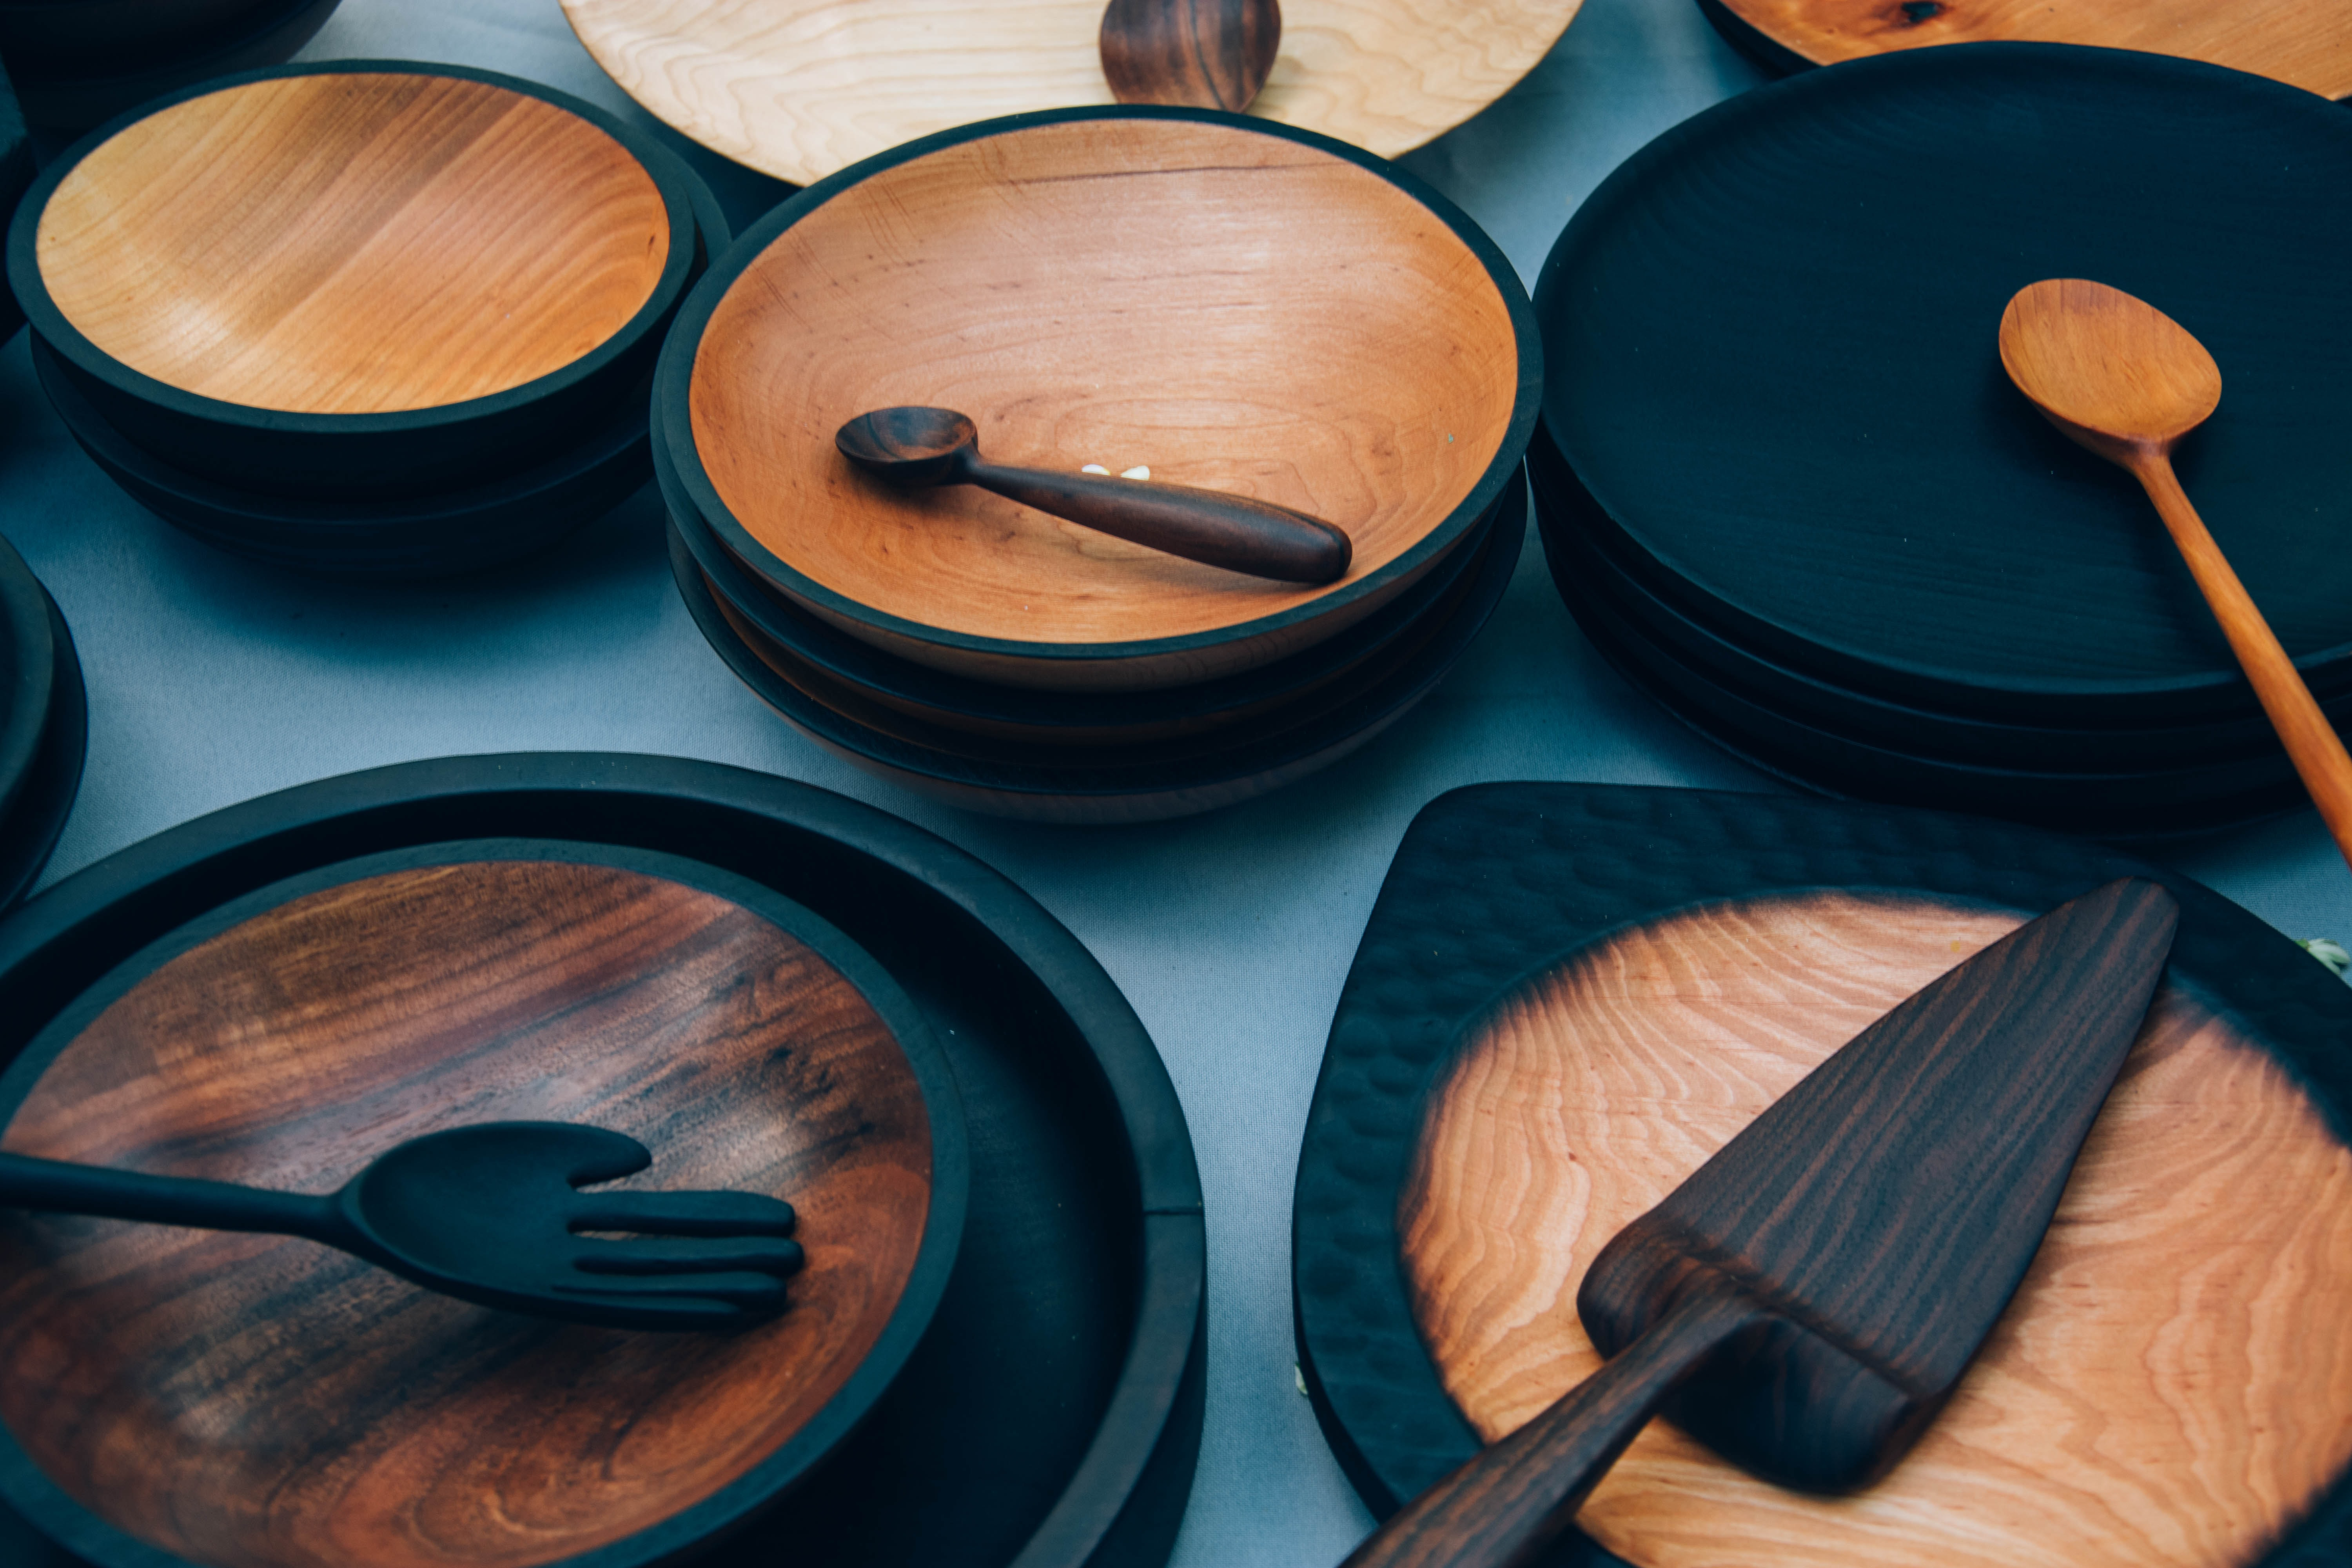 An assortment of wooden bowls, plates, and cutlery